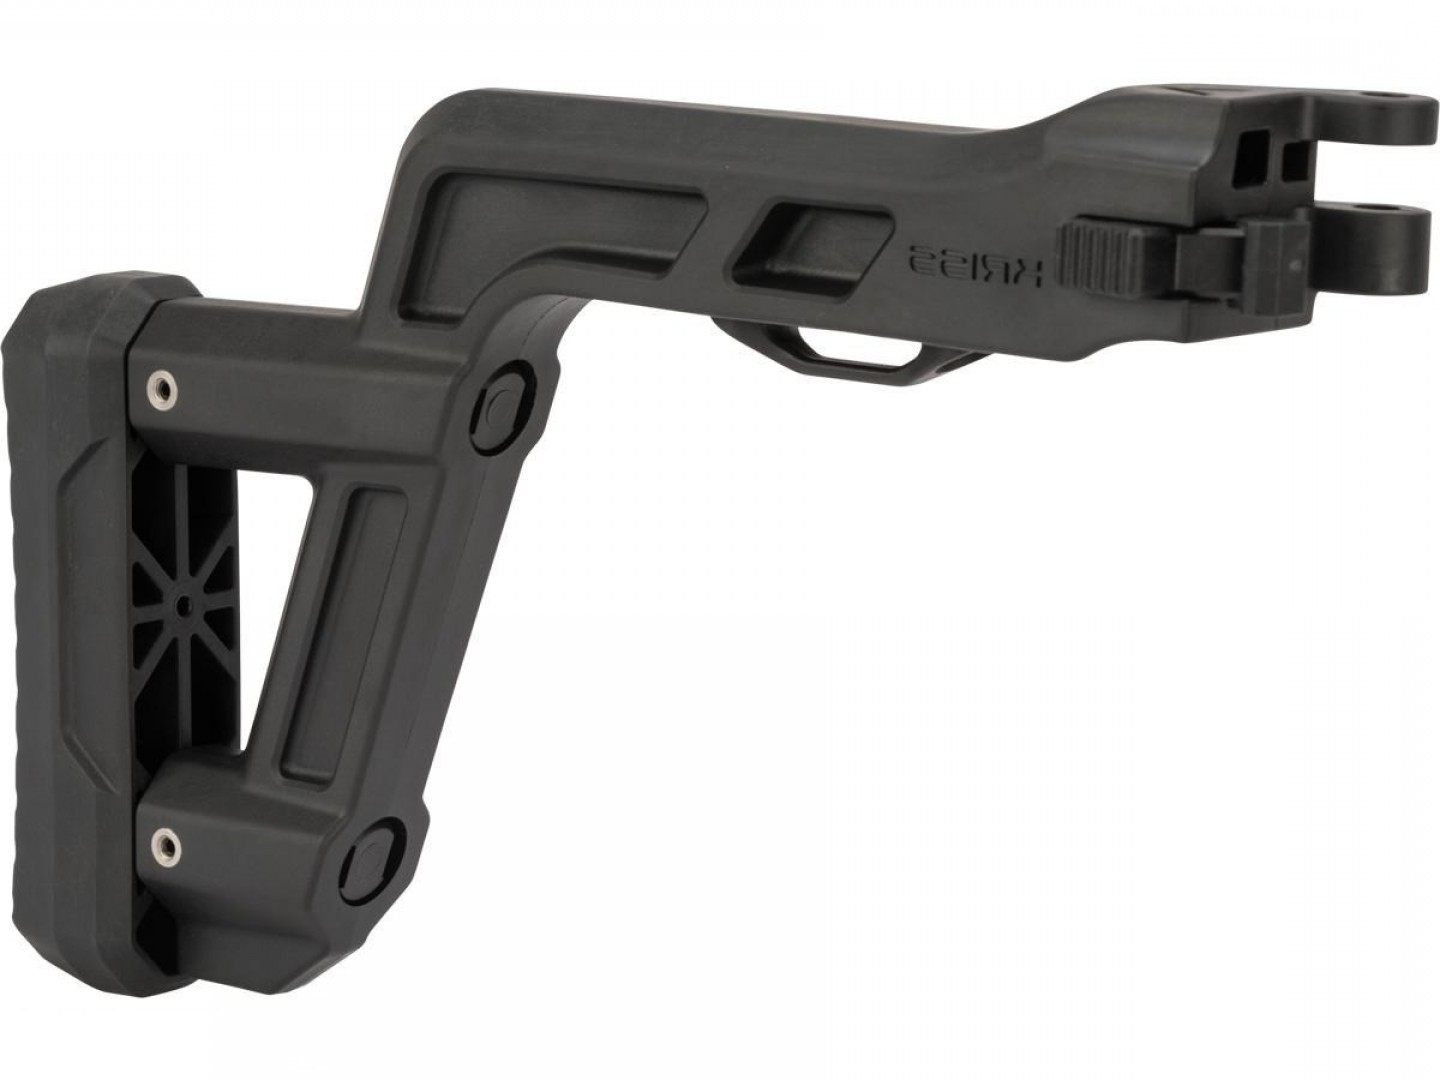 Airsoft Vector AEG: Krytac Airsoft Kriss Vector Aeg Folding Stock Assembly